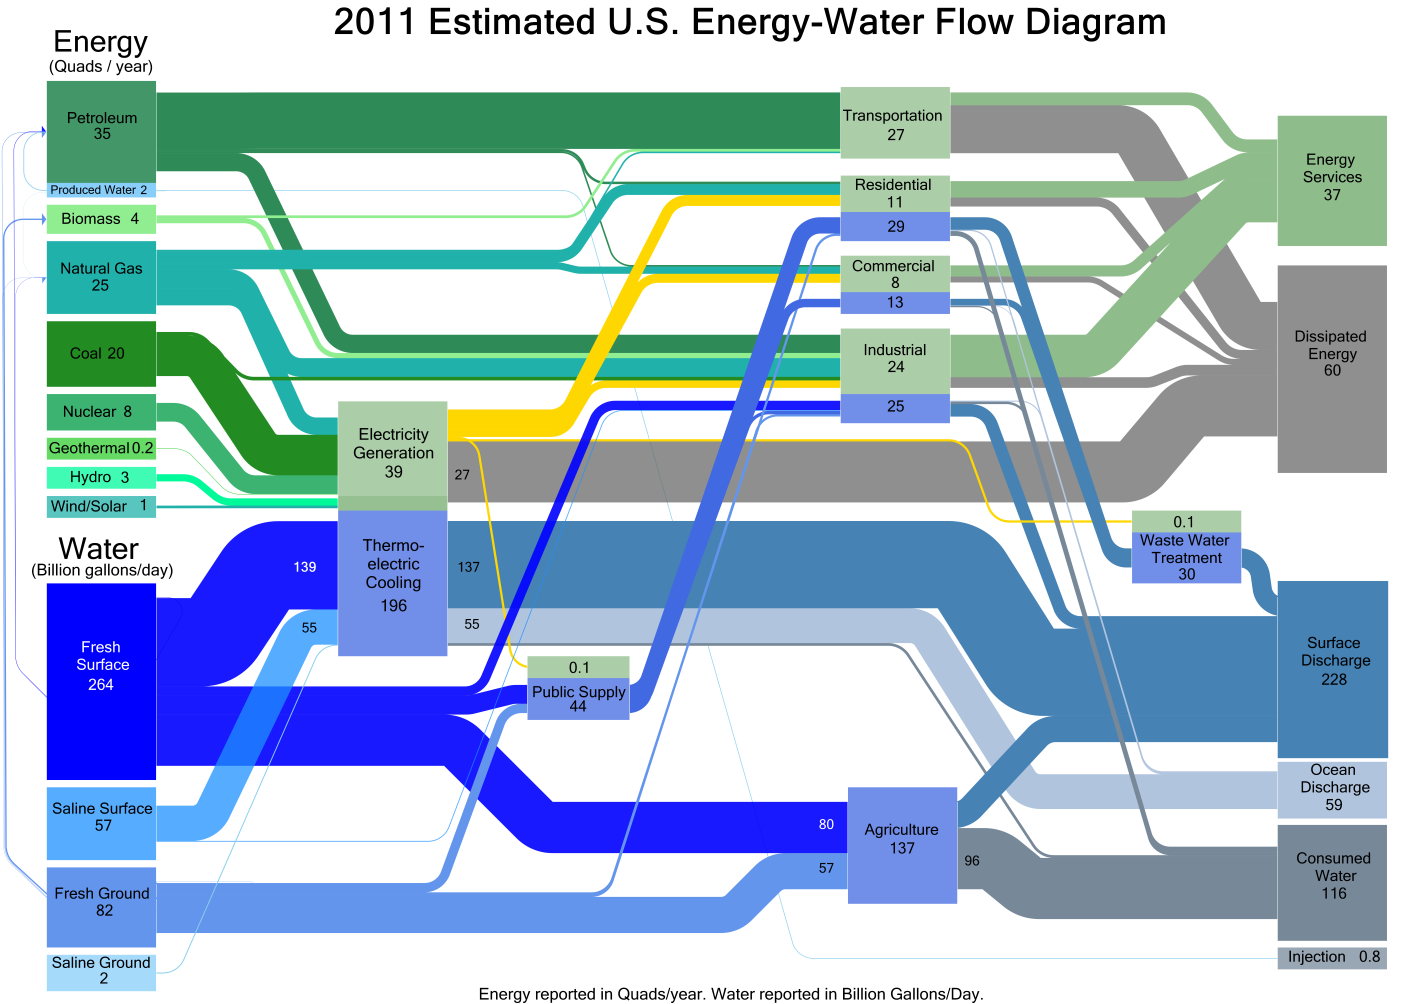 A fantastic diagram of the water energy nexus doe sankey diagram of water and energy use in the us in 2011 nvjuhfo Choice Image